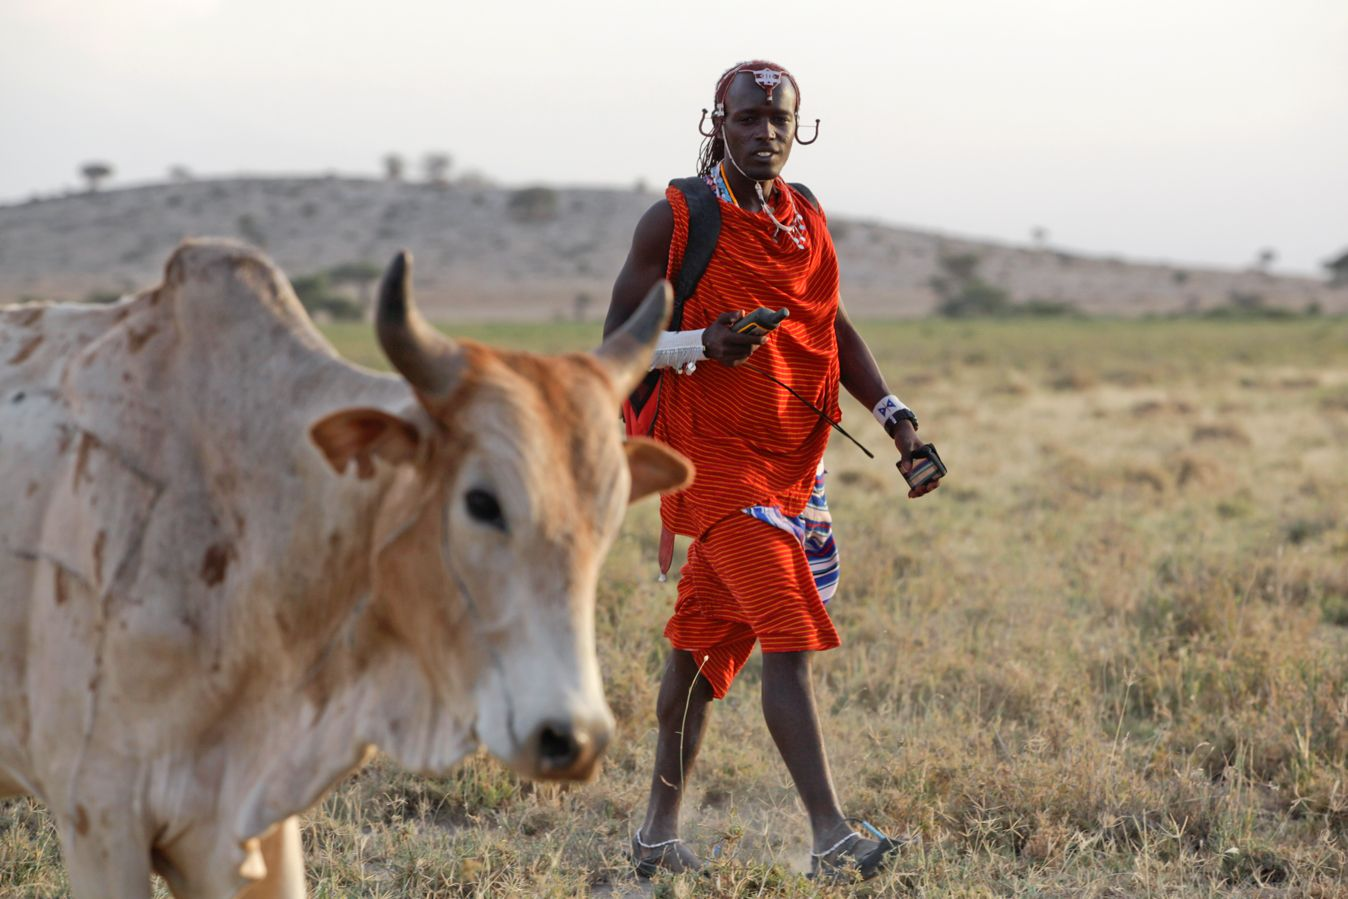 A Warriors for Wildlife team member retrieves a cow that was lost at pasture.